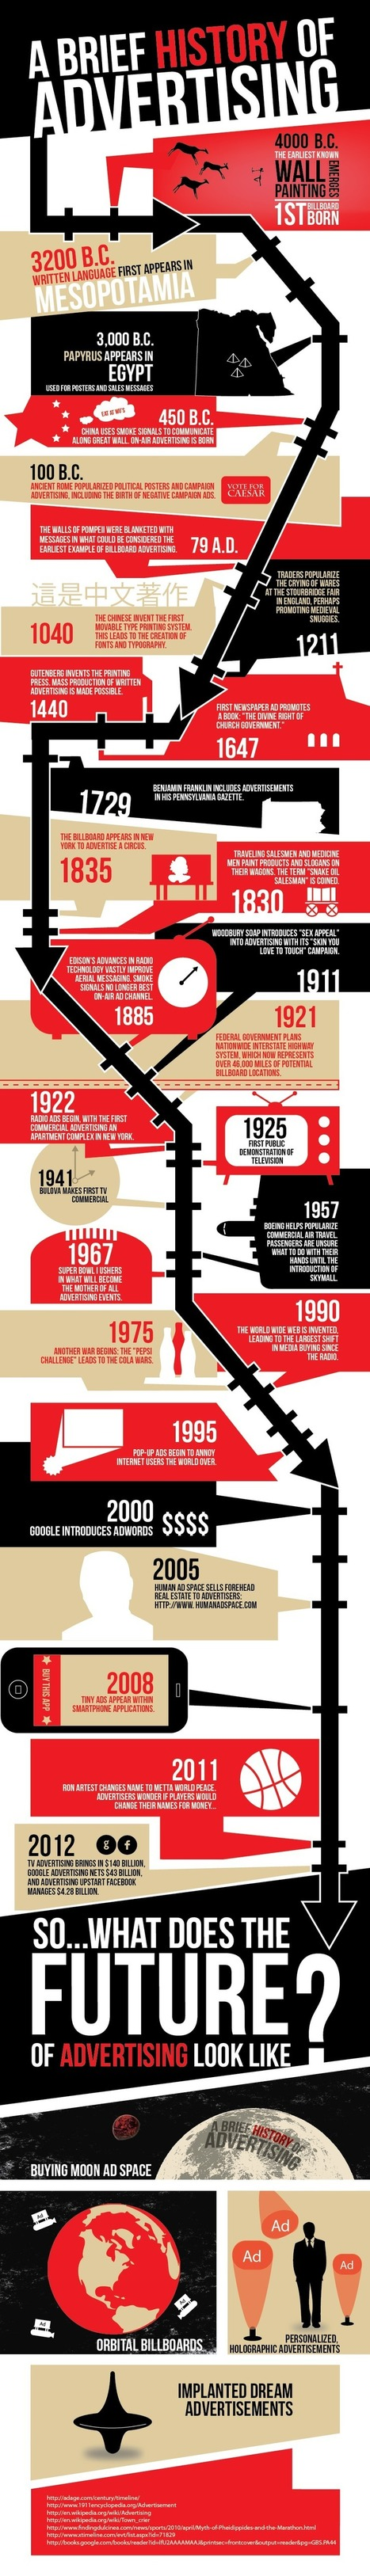 MadMen Is Back, Ocean Media Celebrates with History of Advertising Infographic | Social and digital network | Scoop.it